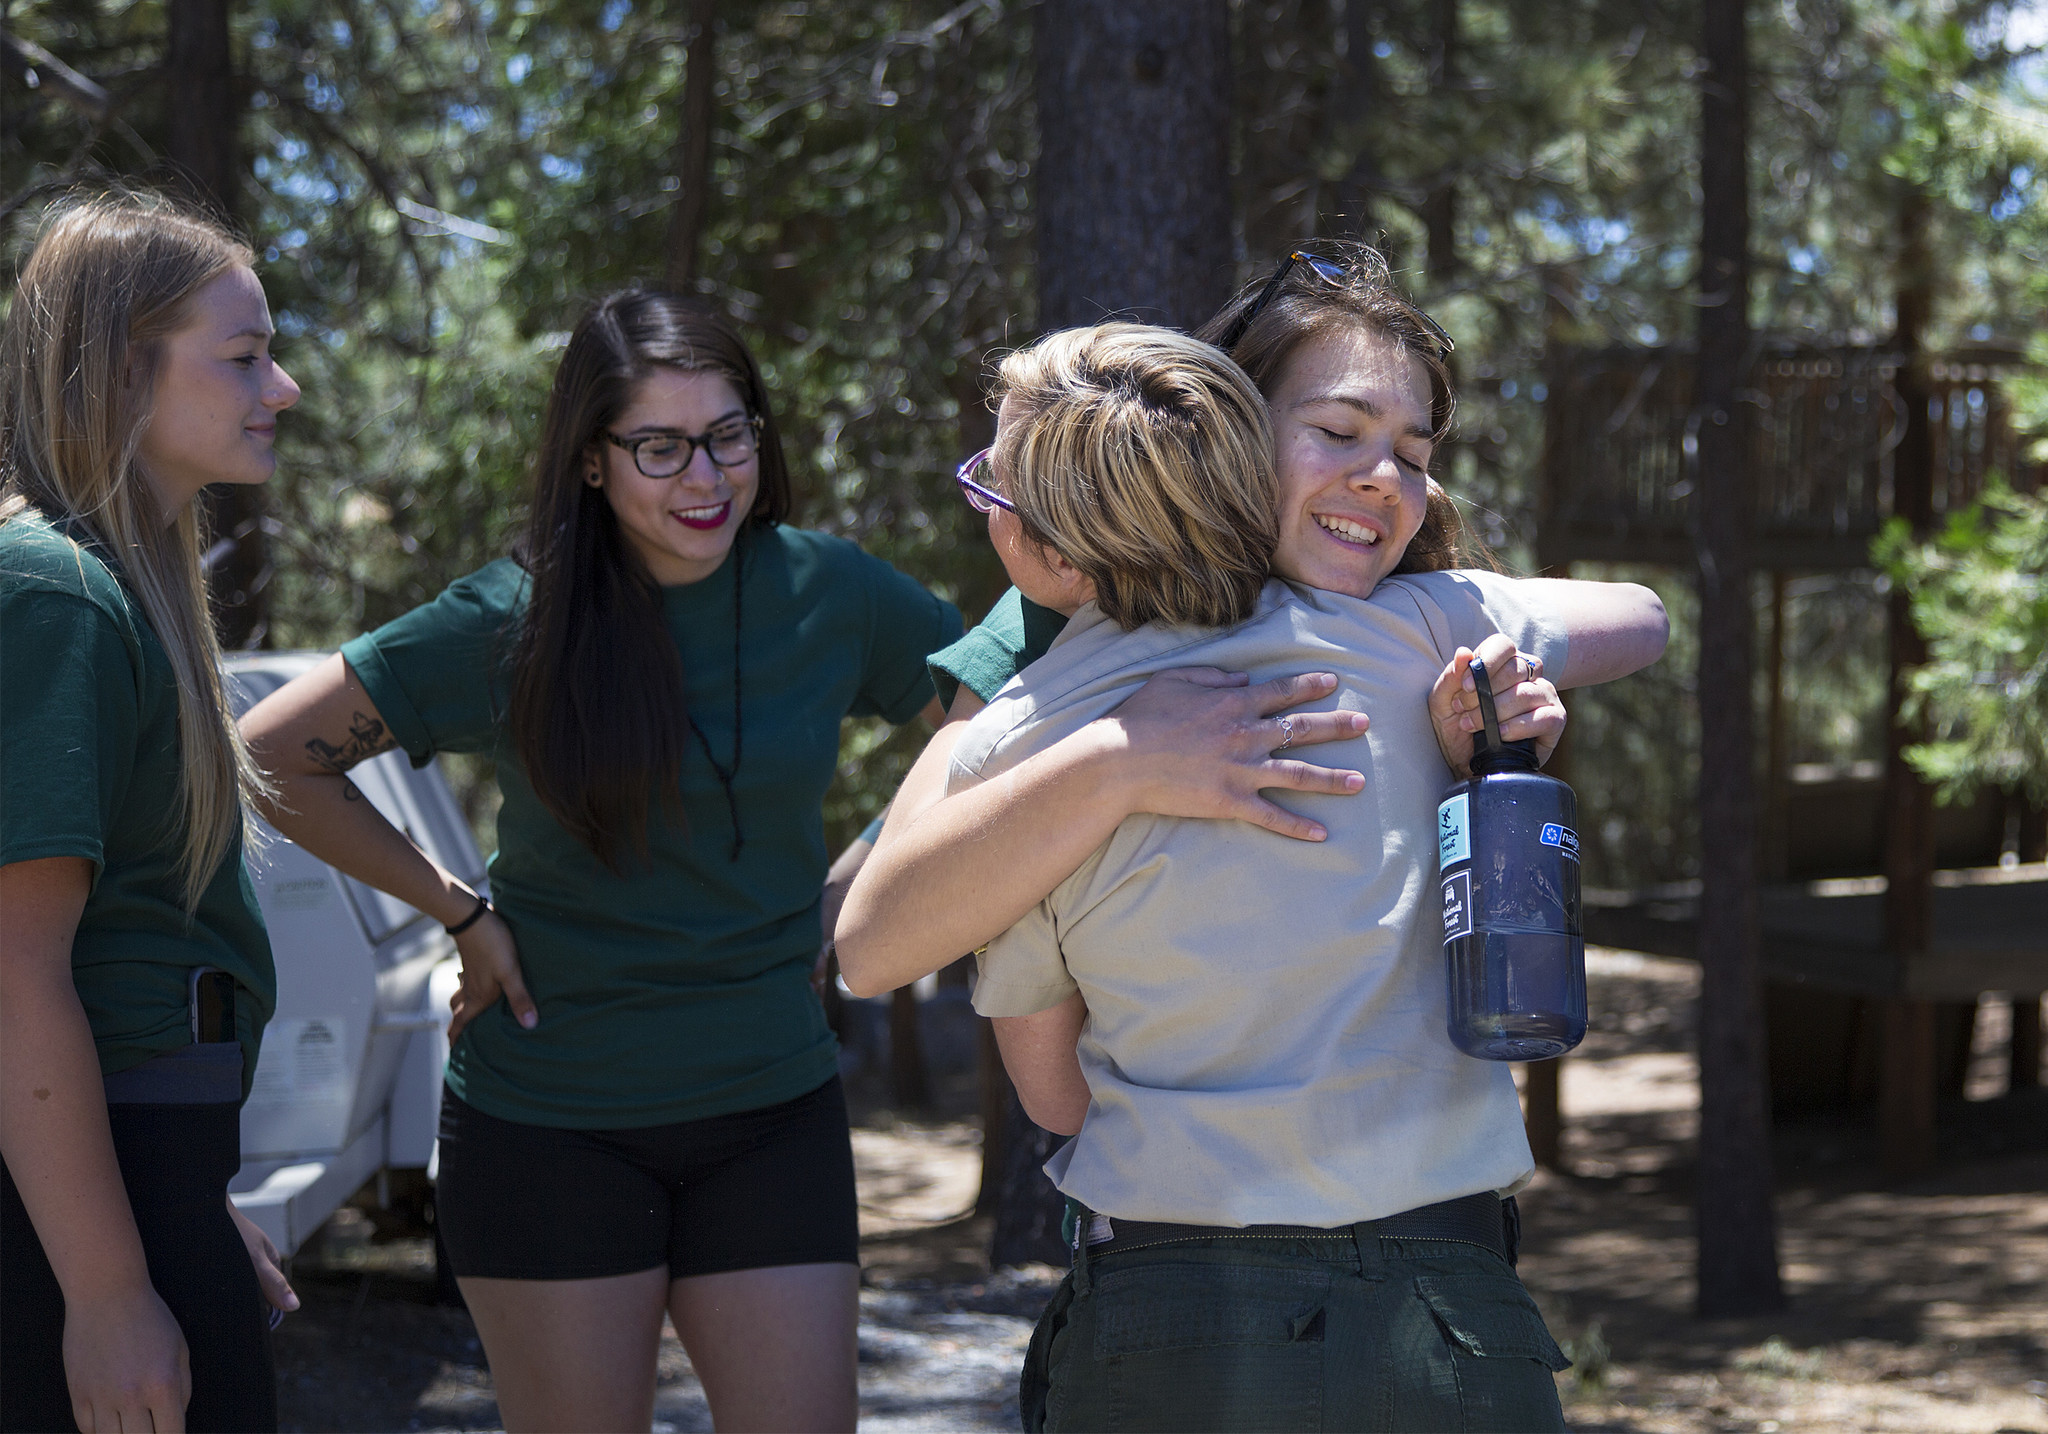 Adela Montserrat Valencia of Cameron Park, holding a water bottle, gets a hug from Kristen Allison of the U.S. Forest Service after graduating from the training camp.